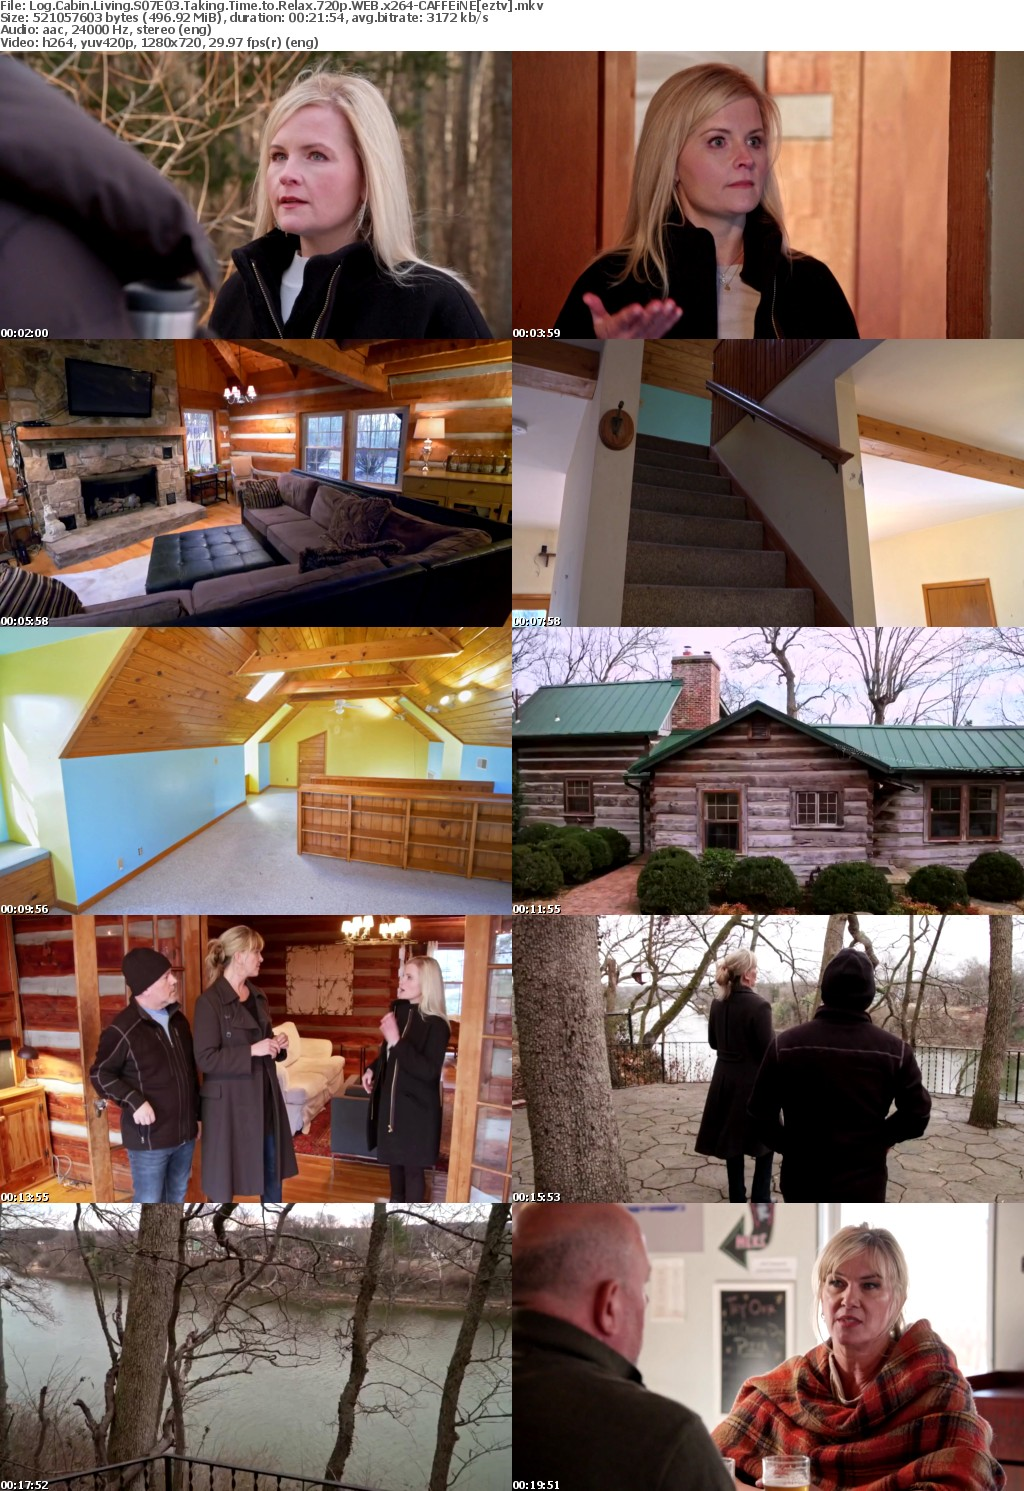 Log Cabin Living S07E03 Taking Time to Relax 720p WEB x264-CAFFEiNE